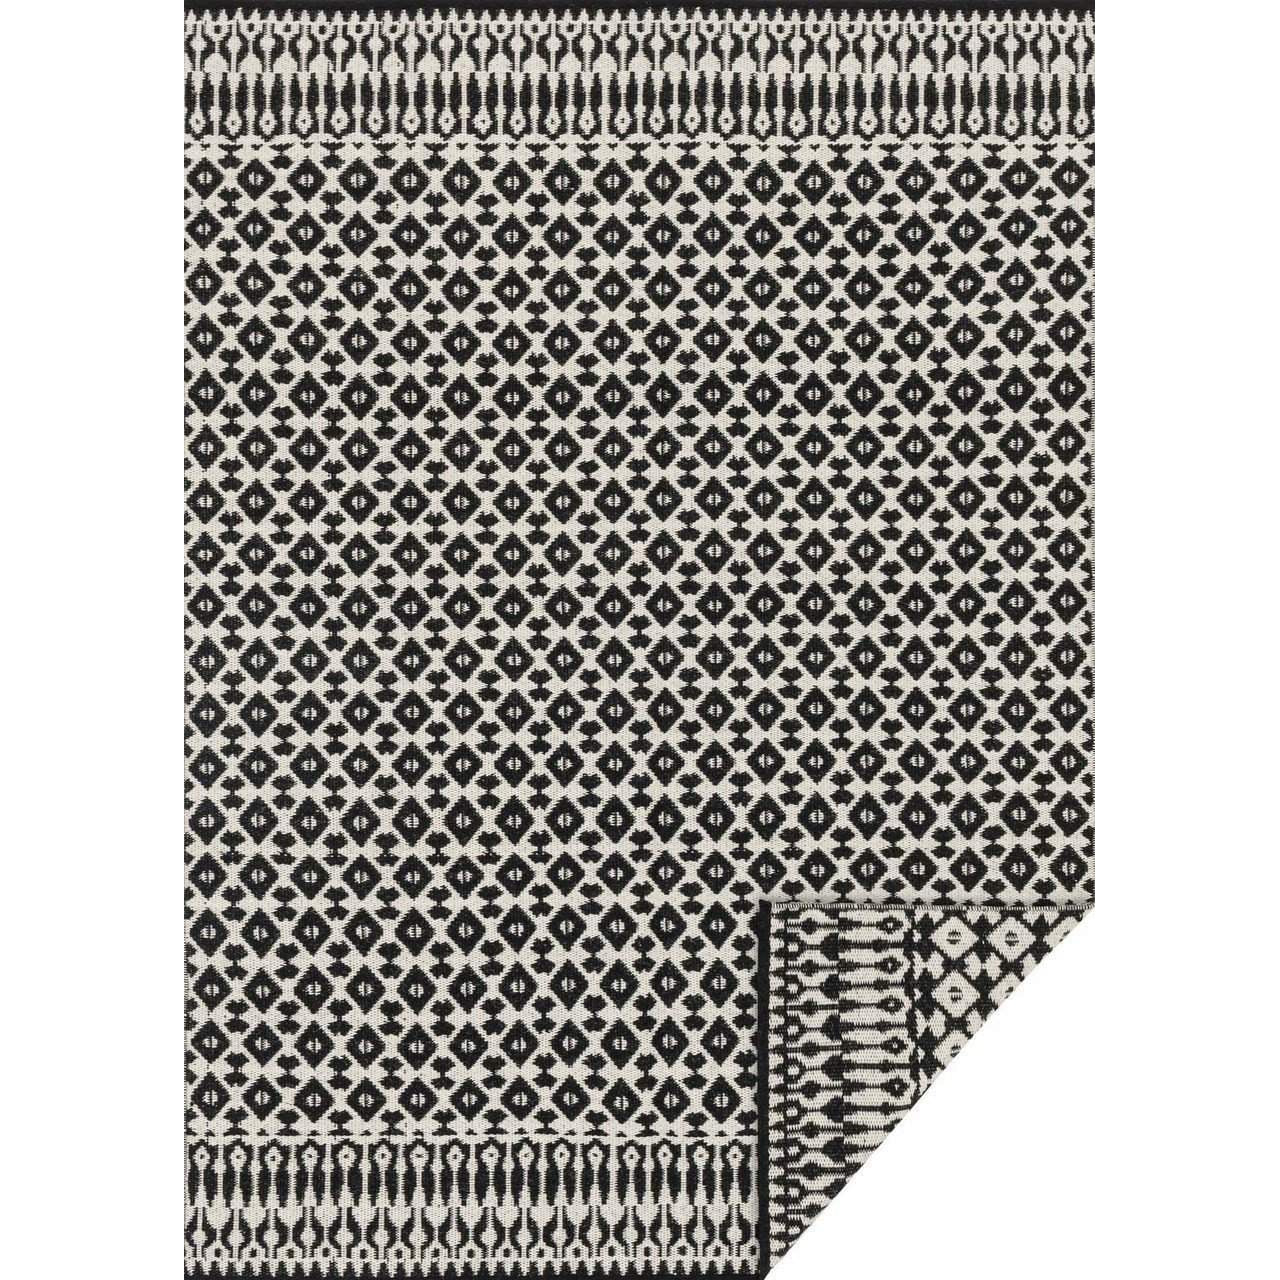 Joanna Gaines Rugs of Magnolia Home Rug Collection - Emmie Kay Collection - Ivory / Black - Blue Hand Home